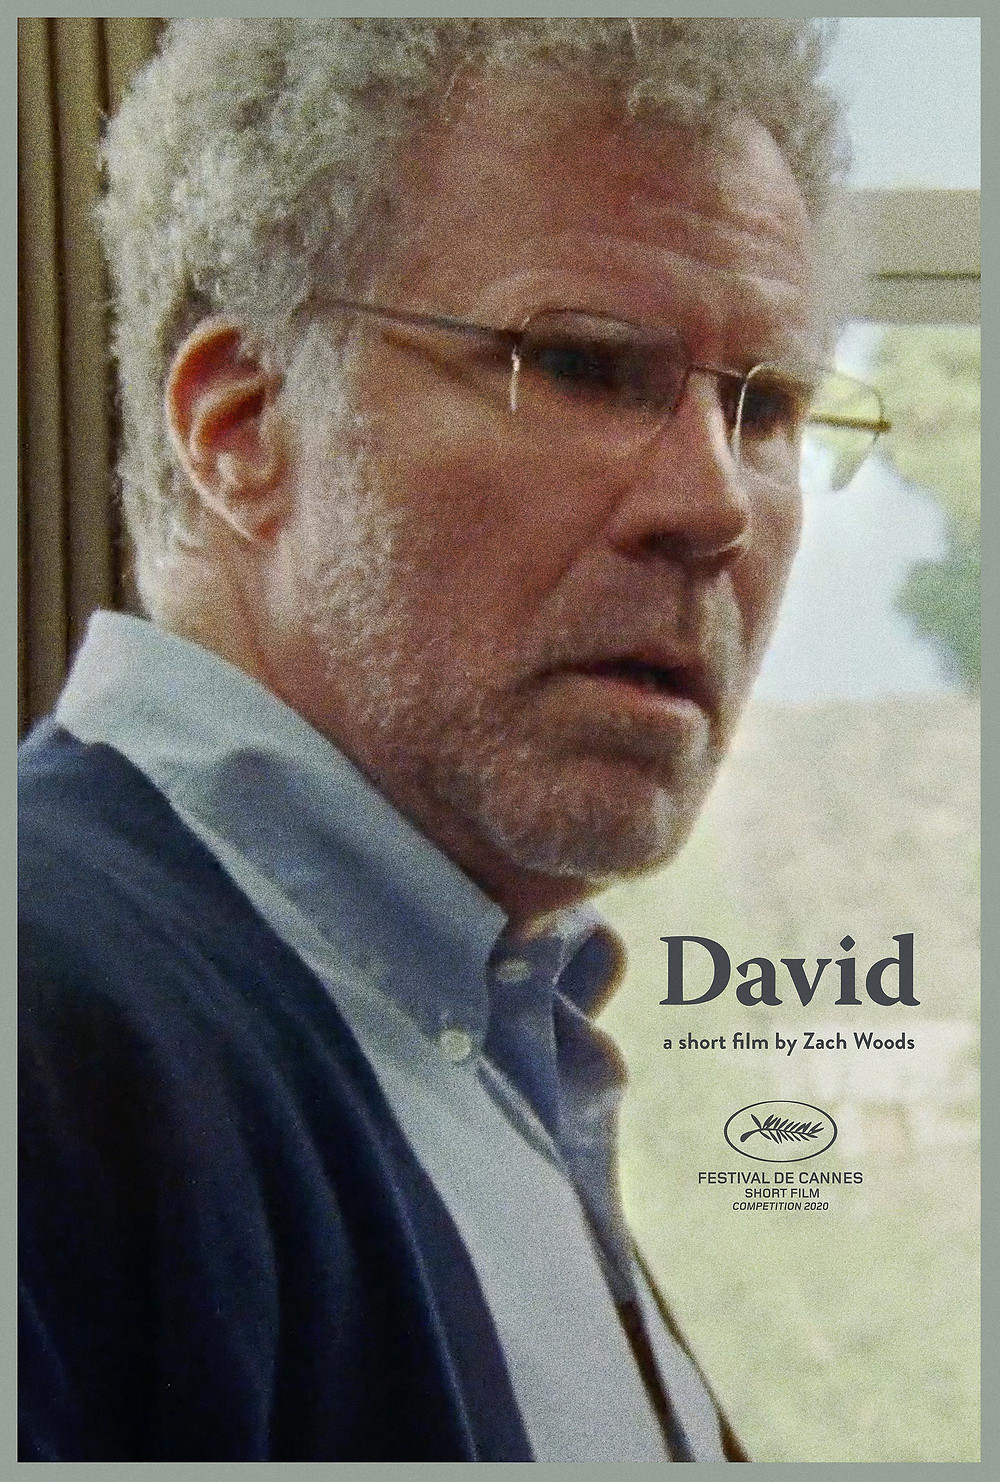 Will Ferrell, plays a therapist, white hair and glasses and smart suit, looks intensely concerned off camera.